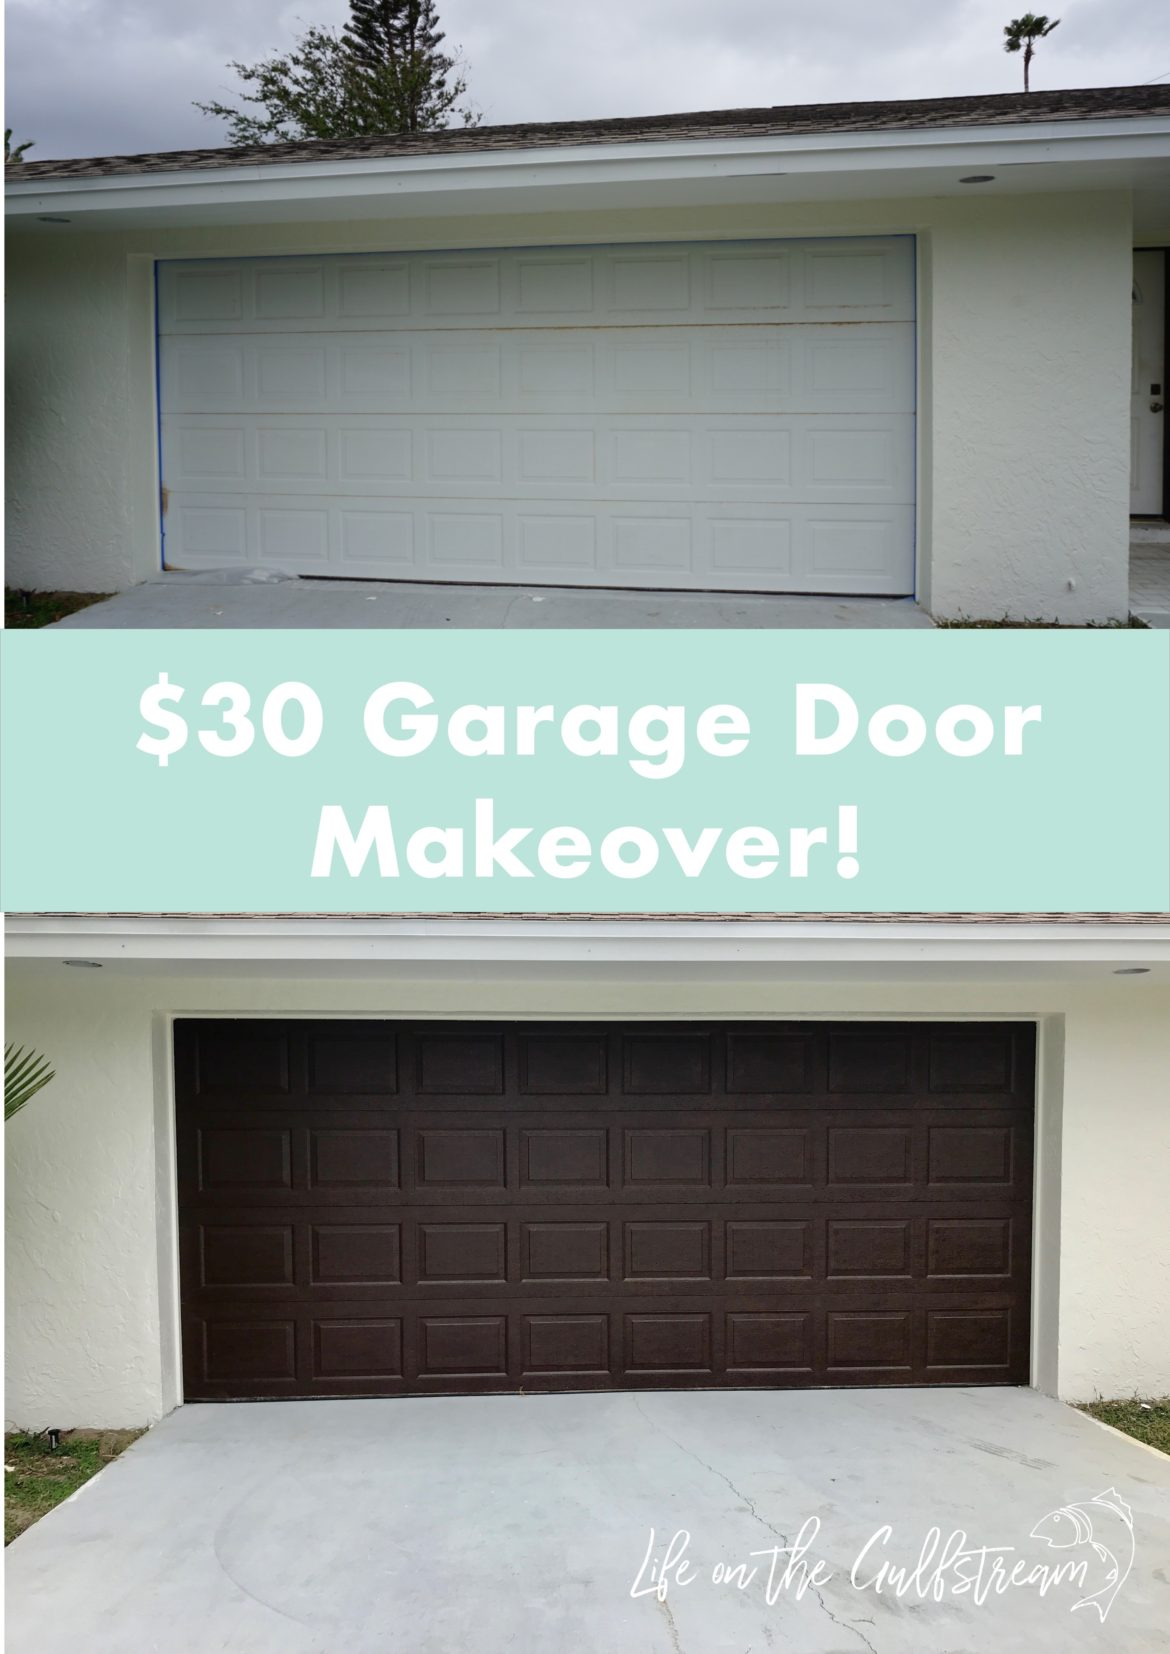 Gel Stain Garage Door Makeover | Life on the Gulfstream